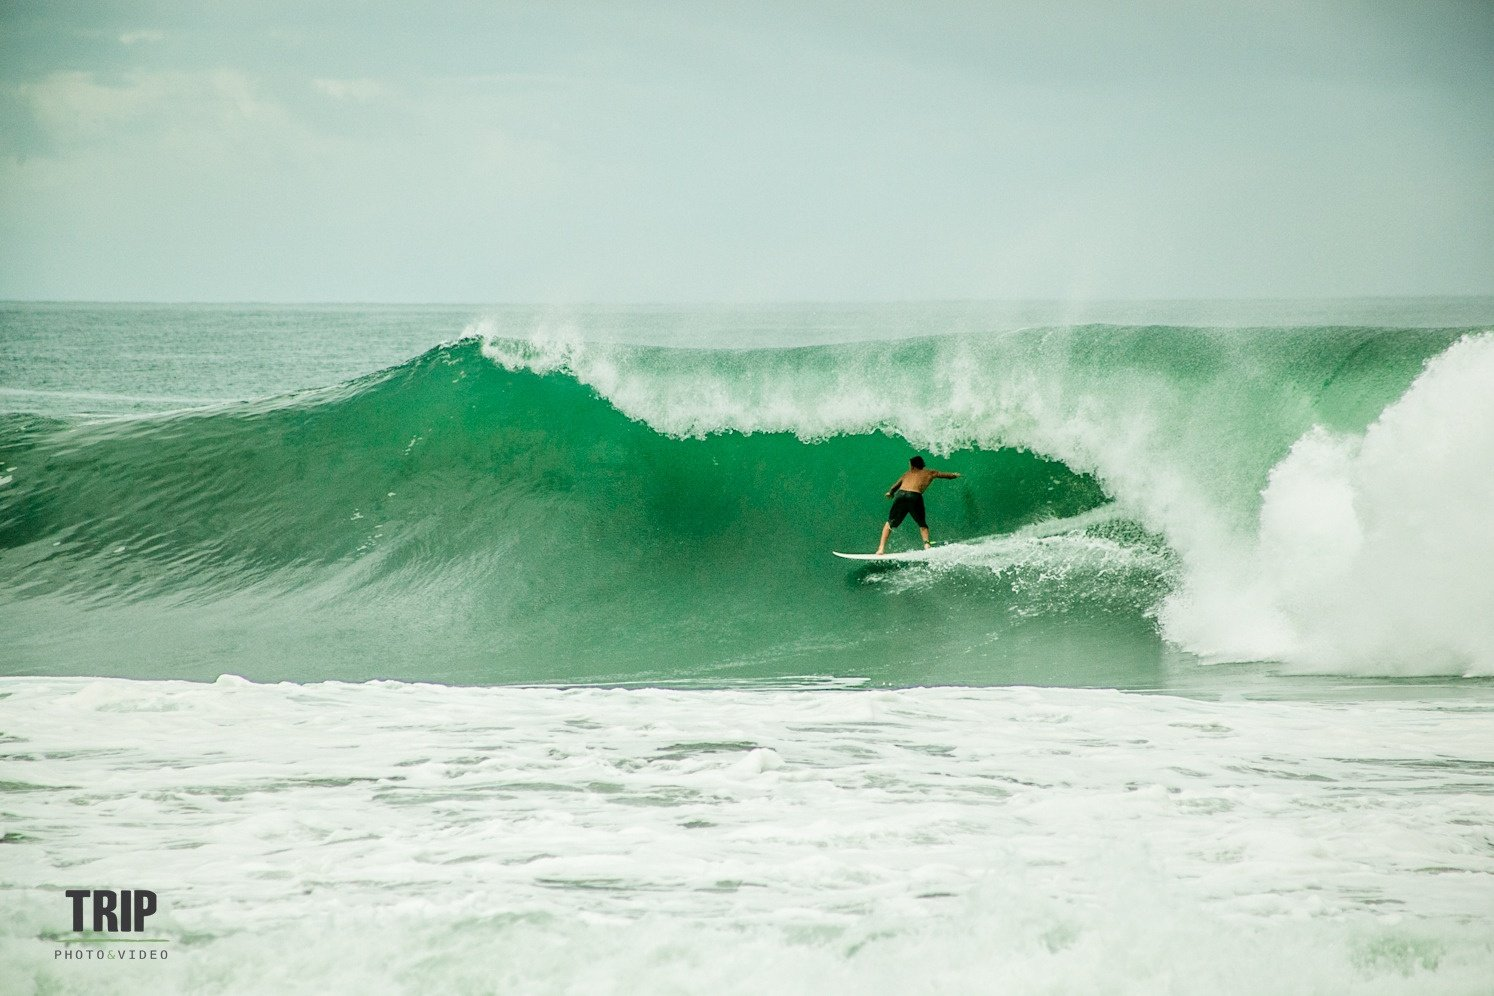 Pablo Franceschi's photo of Playa Hermosa